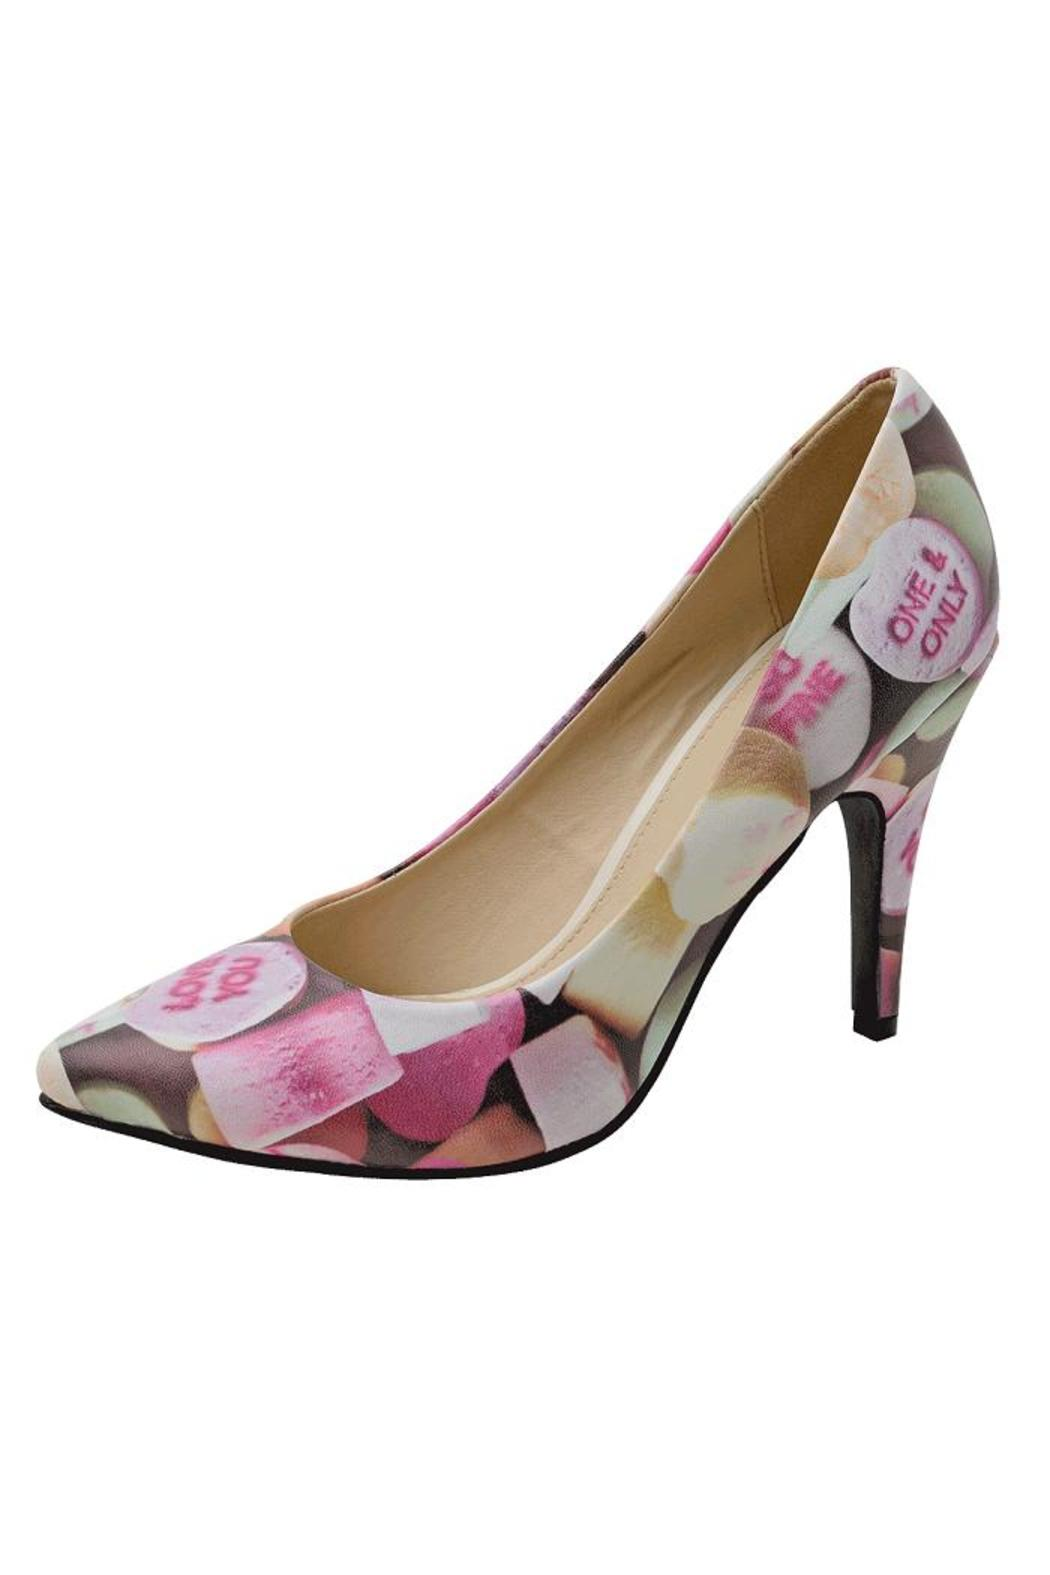 T.U.K. Shoes Candy Hearts Heels - Side Cropped Image